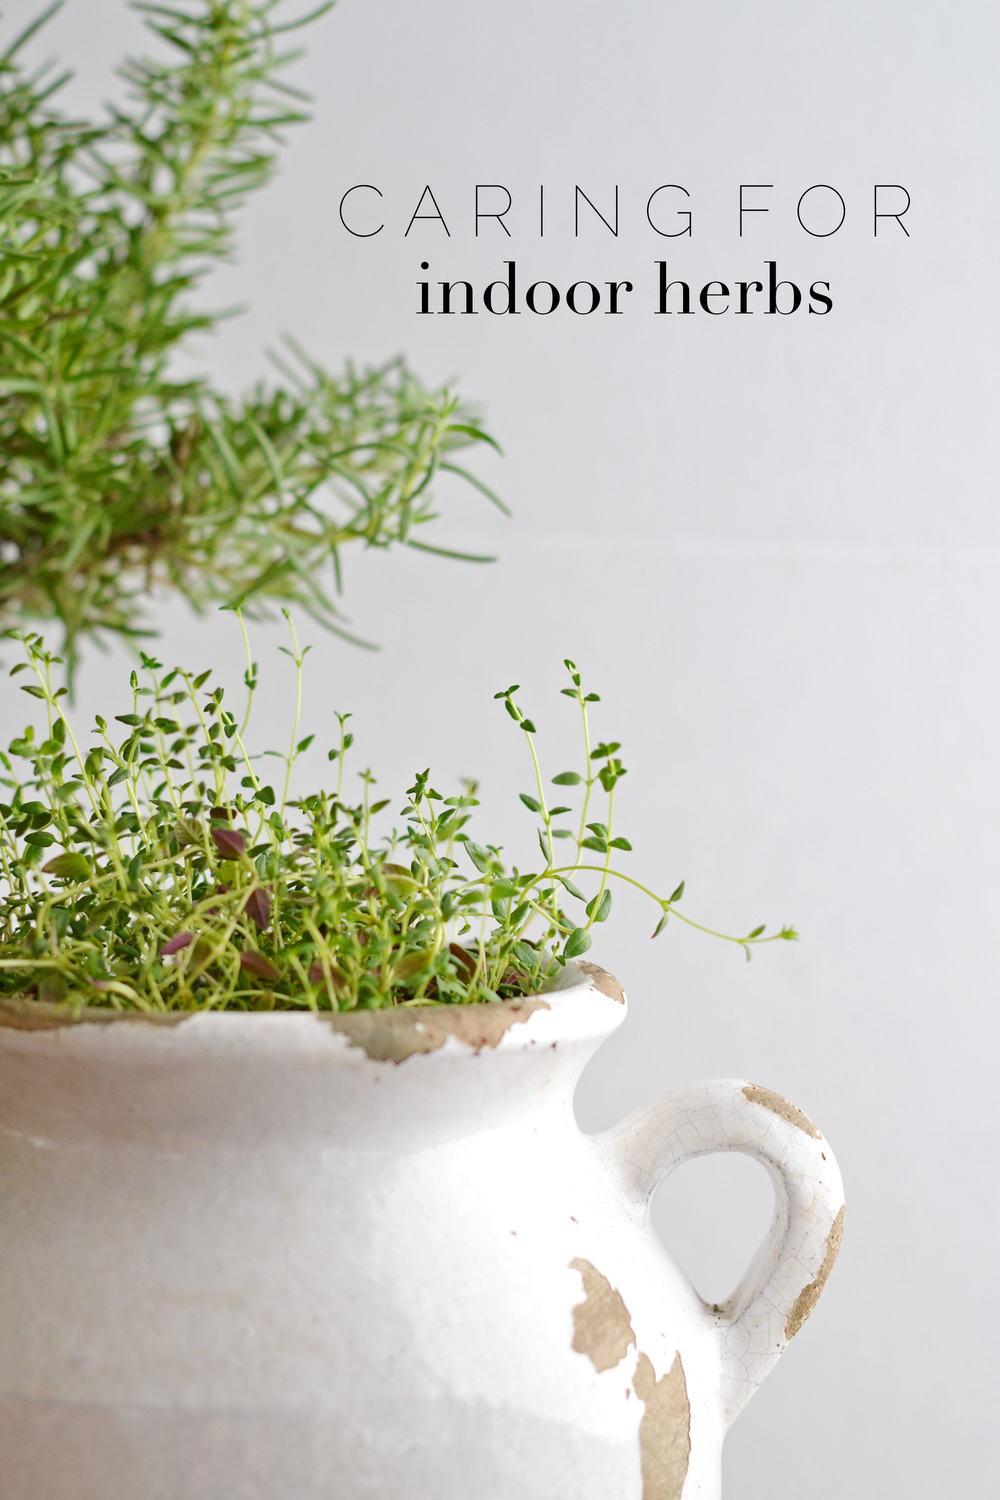 Tips for taking care of indoor herbs from Boxwoodavenue.com